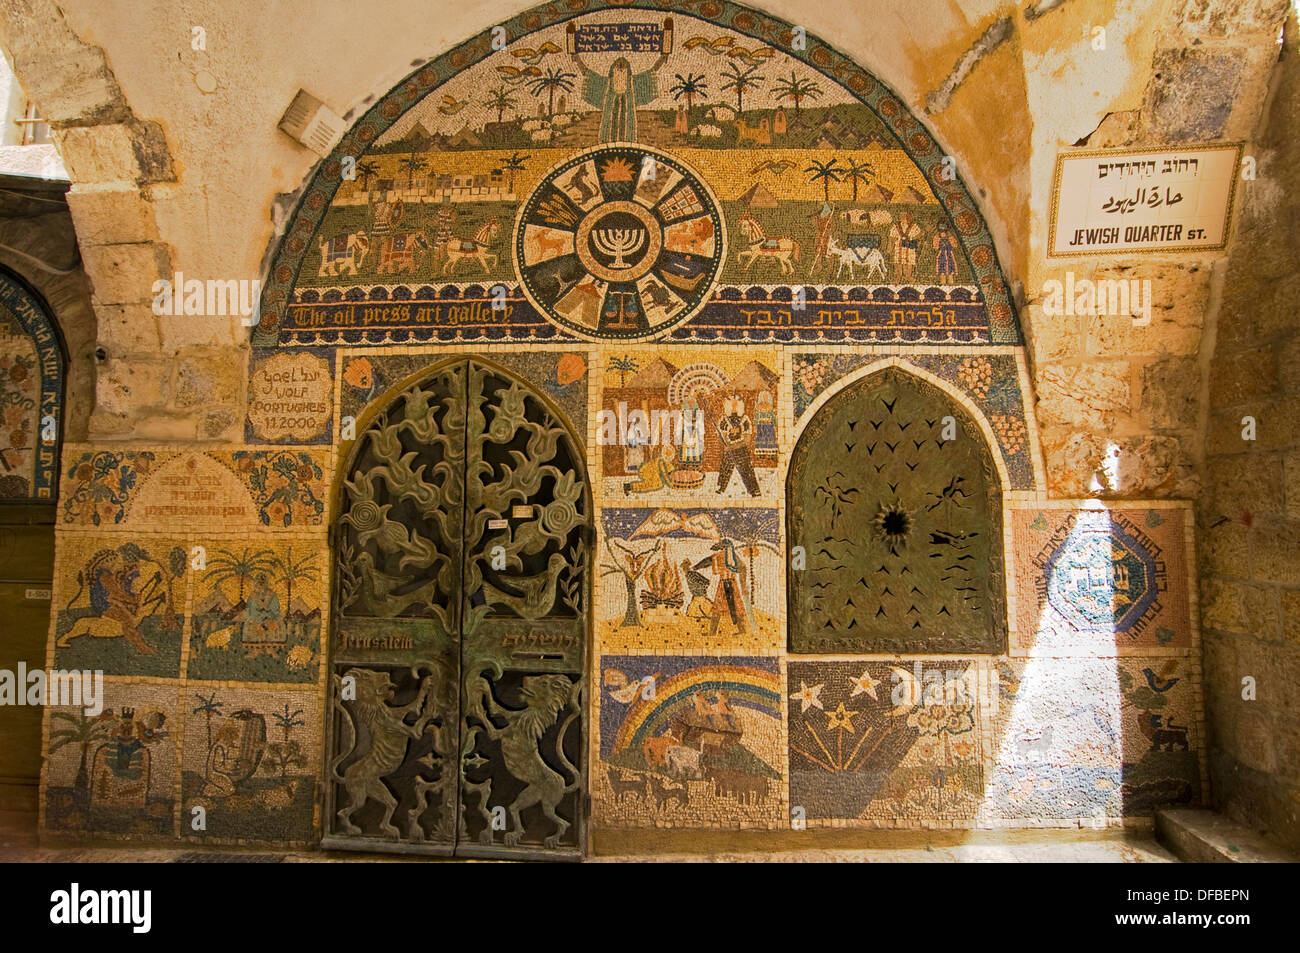 art and craftmanship in the old city of Jerusalem - Stock Image